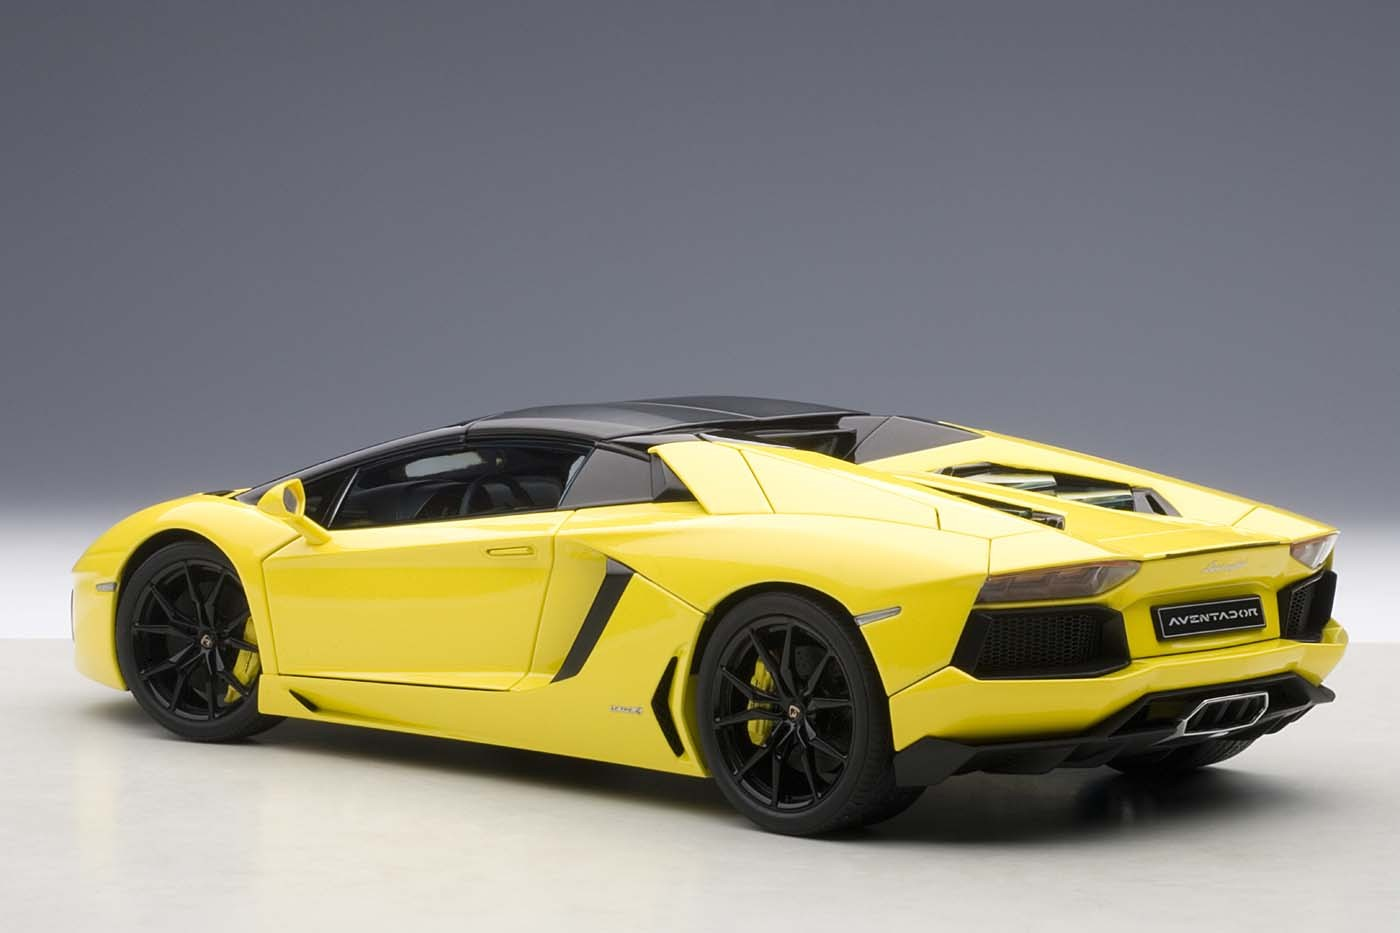 Autoart Highly Detailed Die Cast Model Yellow Lamborghini Aventador